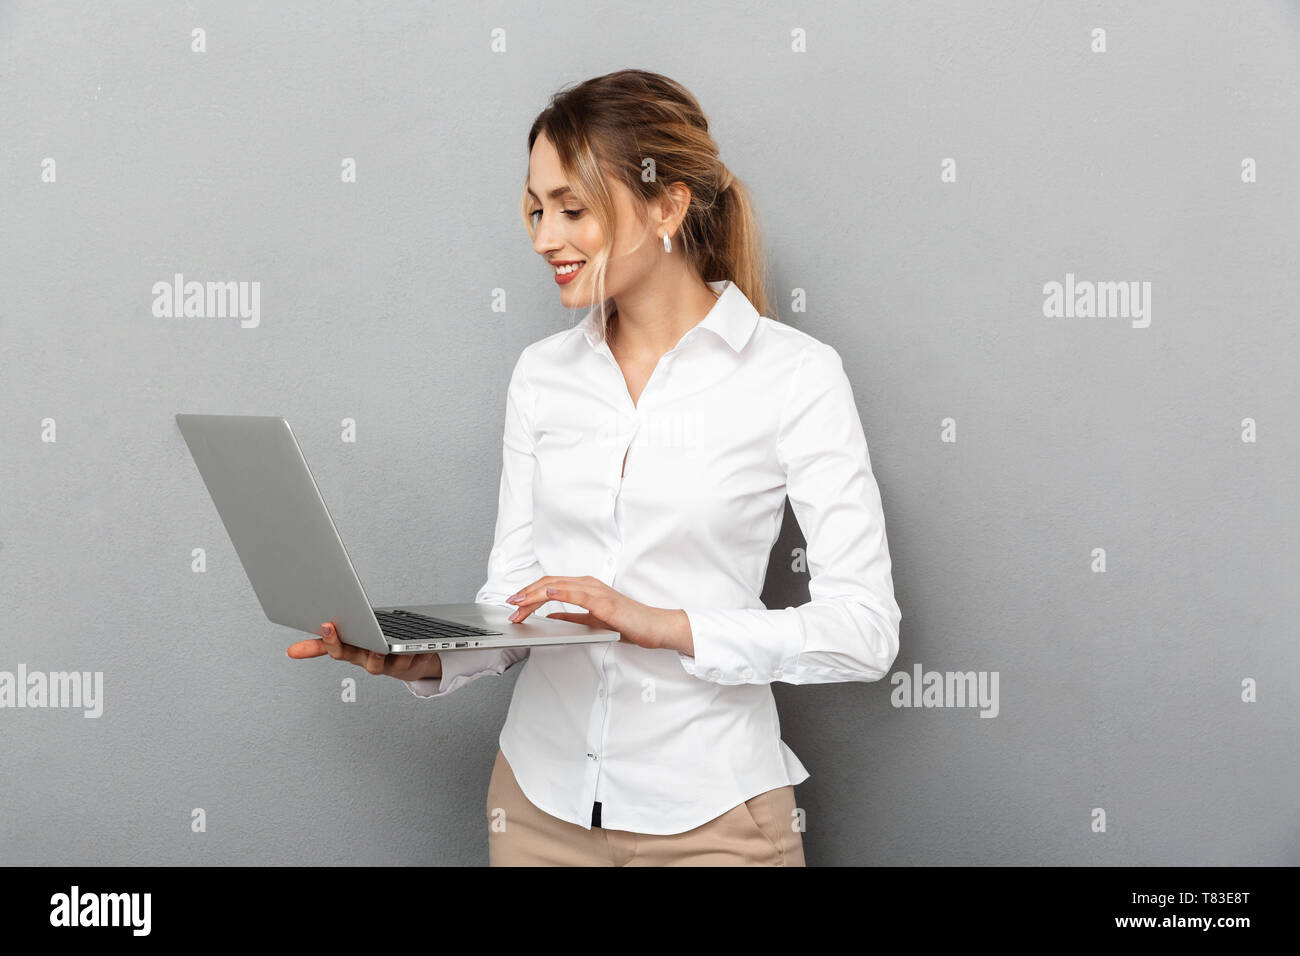 Photo of businesslike woman in formal wear standing and holding laptop in the office isolated over gray background - Stock Image